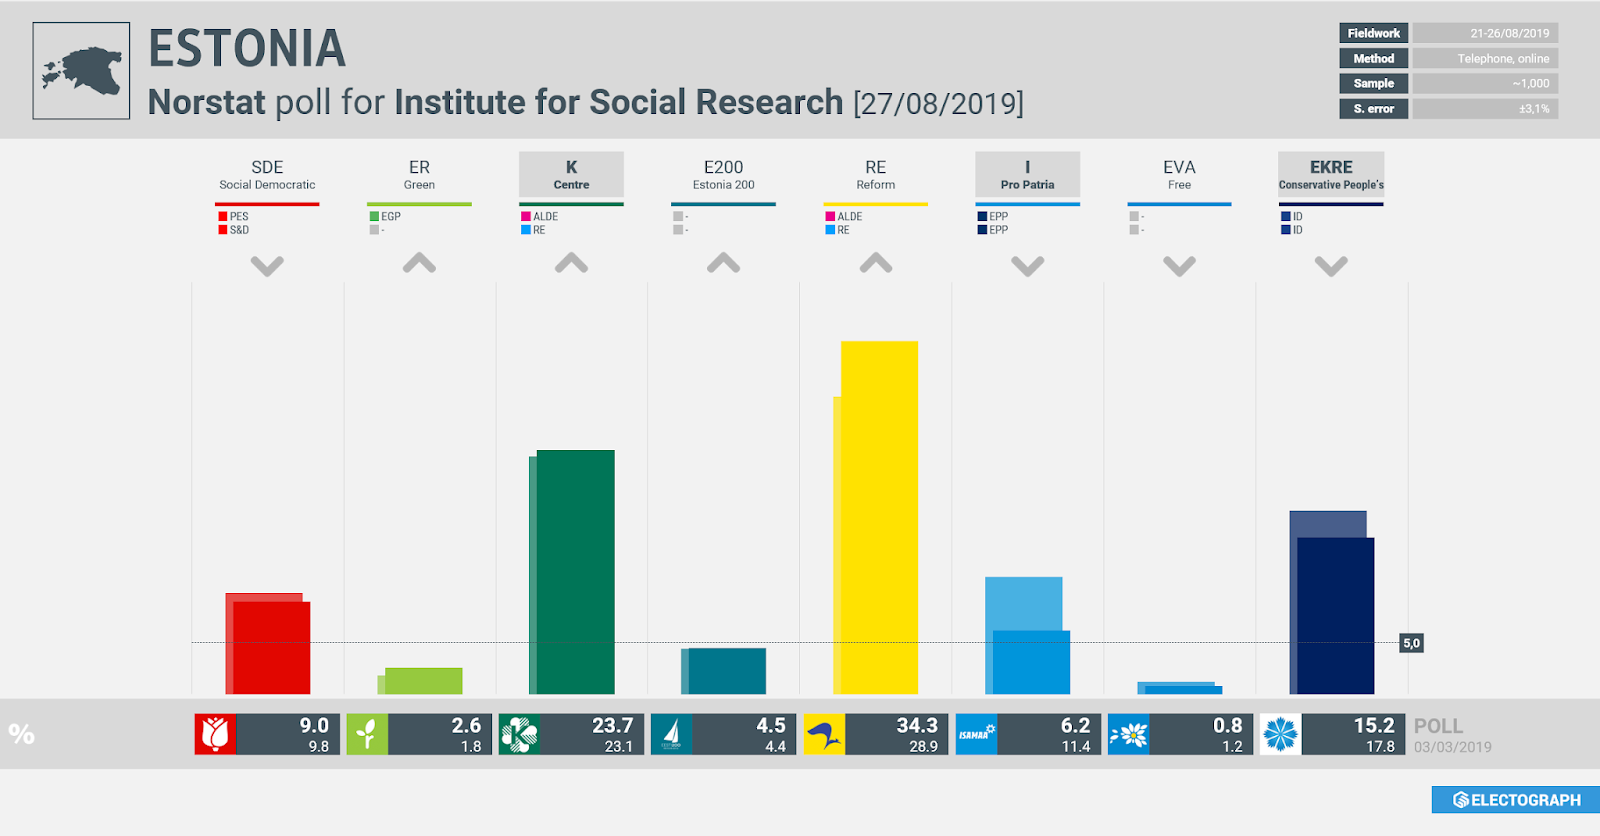 ESTONIA: Norstat poll chart for Institute for Social Research, 27 August 2019